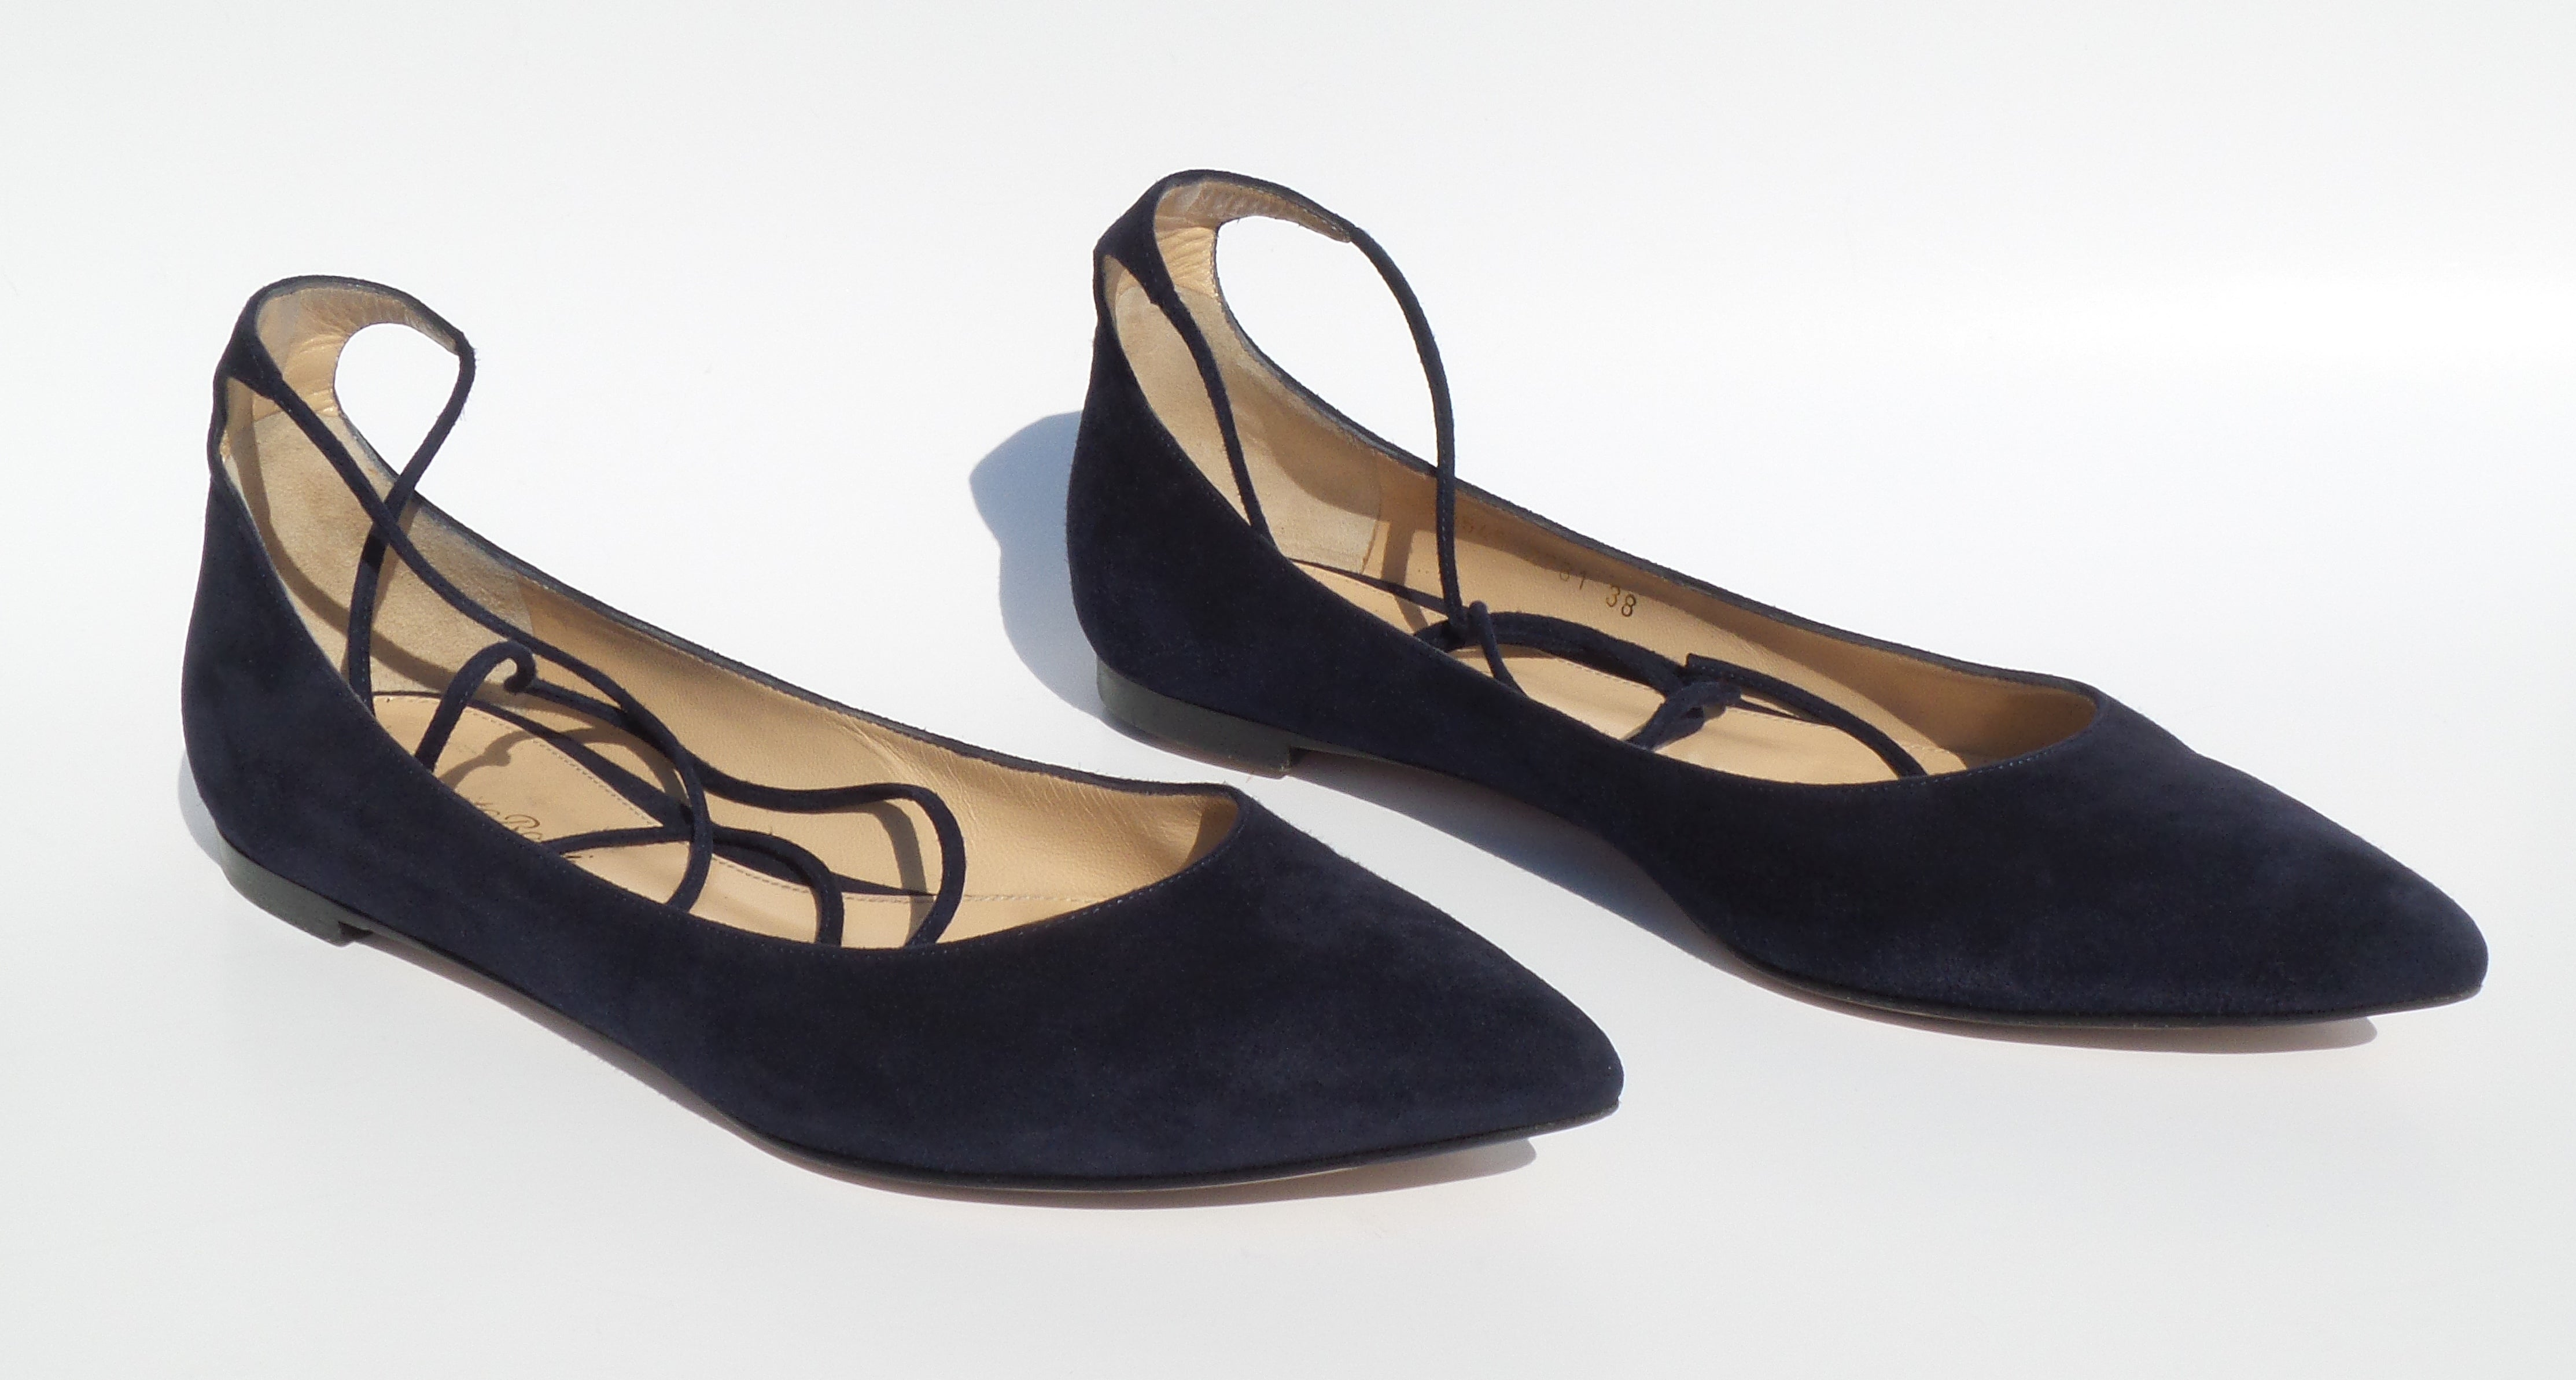 eecfe2ddb37 GIANVITO ROSSI Navy Blue Suede Pointed Toe Wrap Ankle Tie Strap Ballet Flats  38